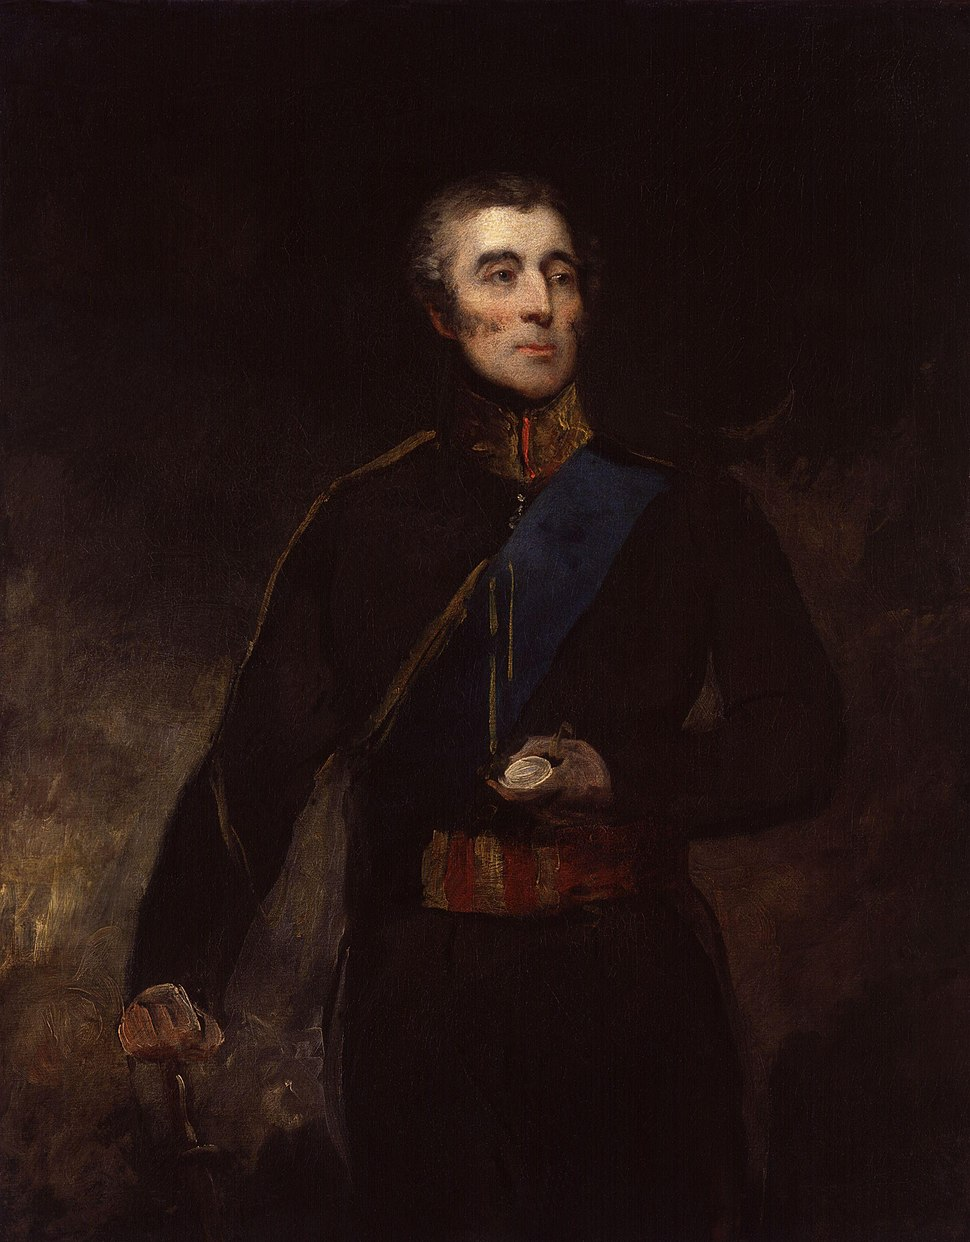 Arthur Wellesley, 1st Duke of Wellington by John Jackson